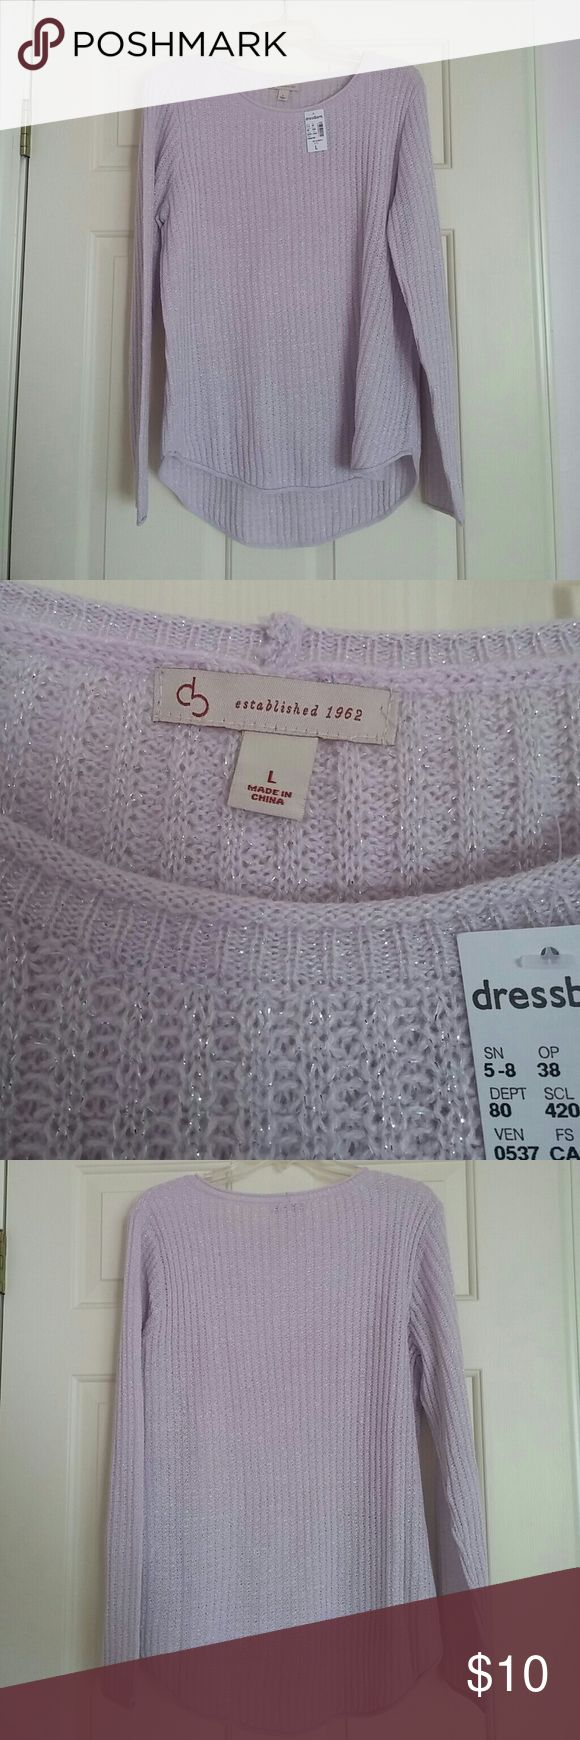 Sparkly light purple sweater Long sleeve light purple sweater. Received as gift, forgot to return. NWT Dress Barn Sweaters Crew & Scoop Necks